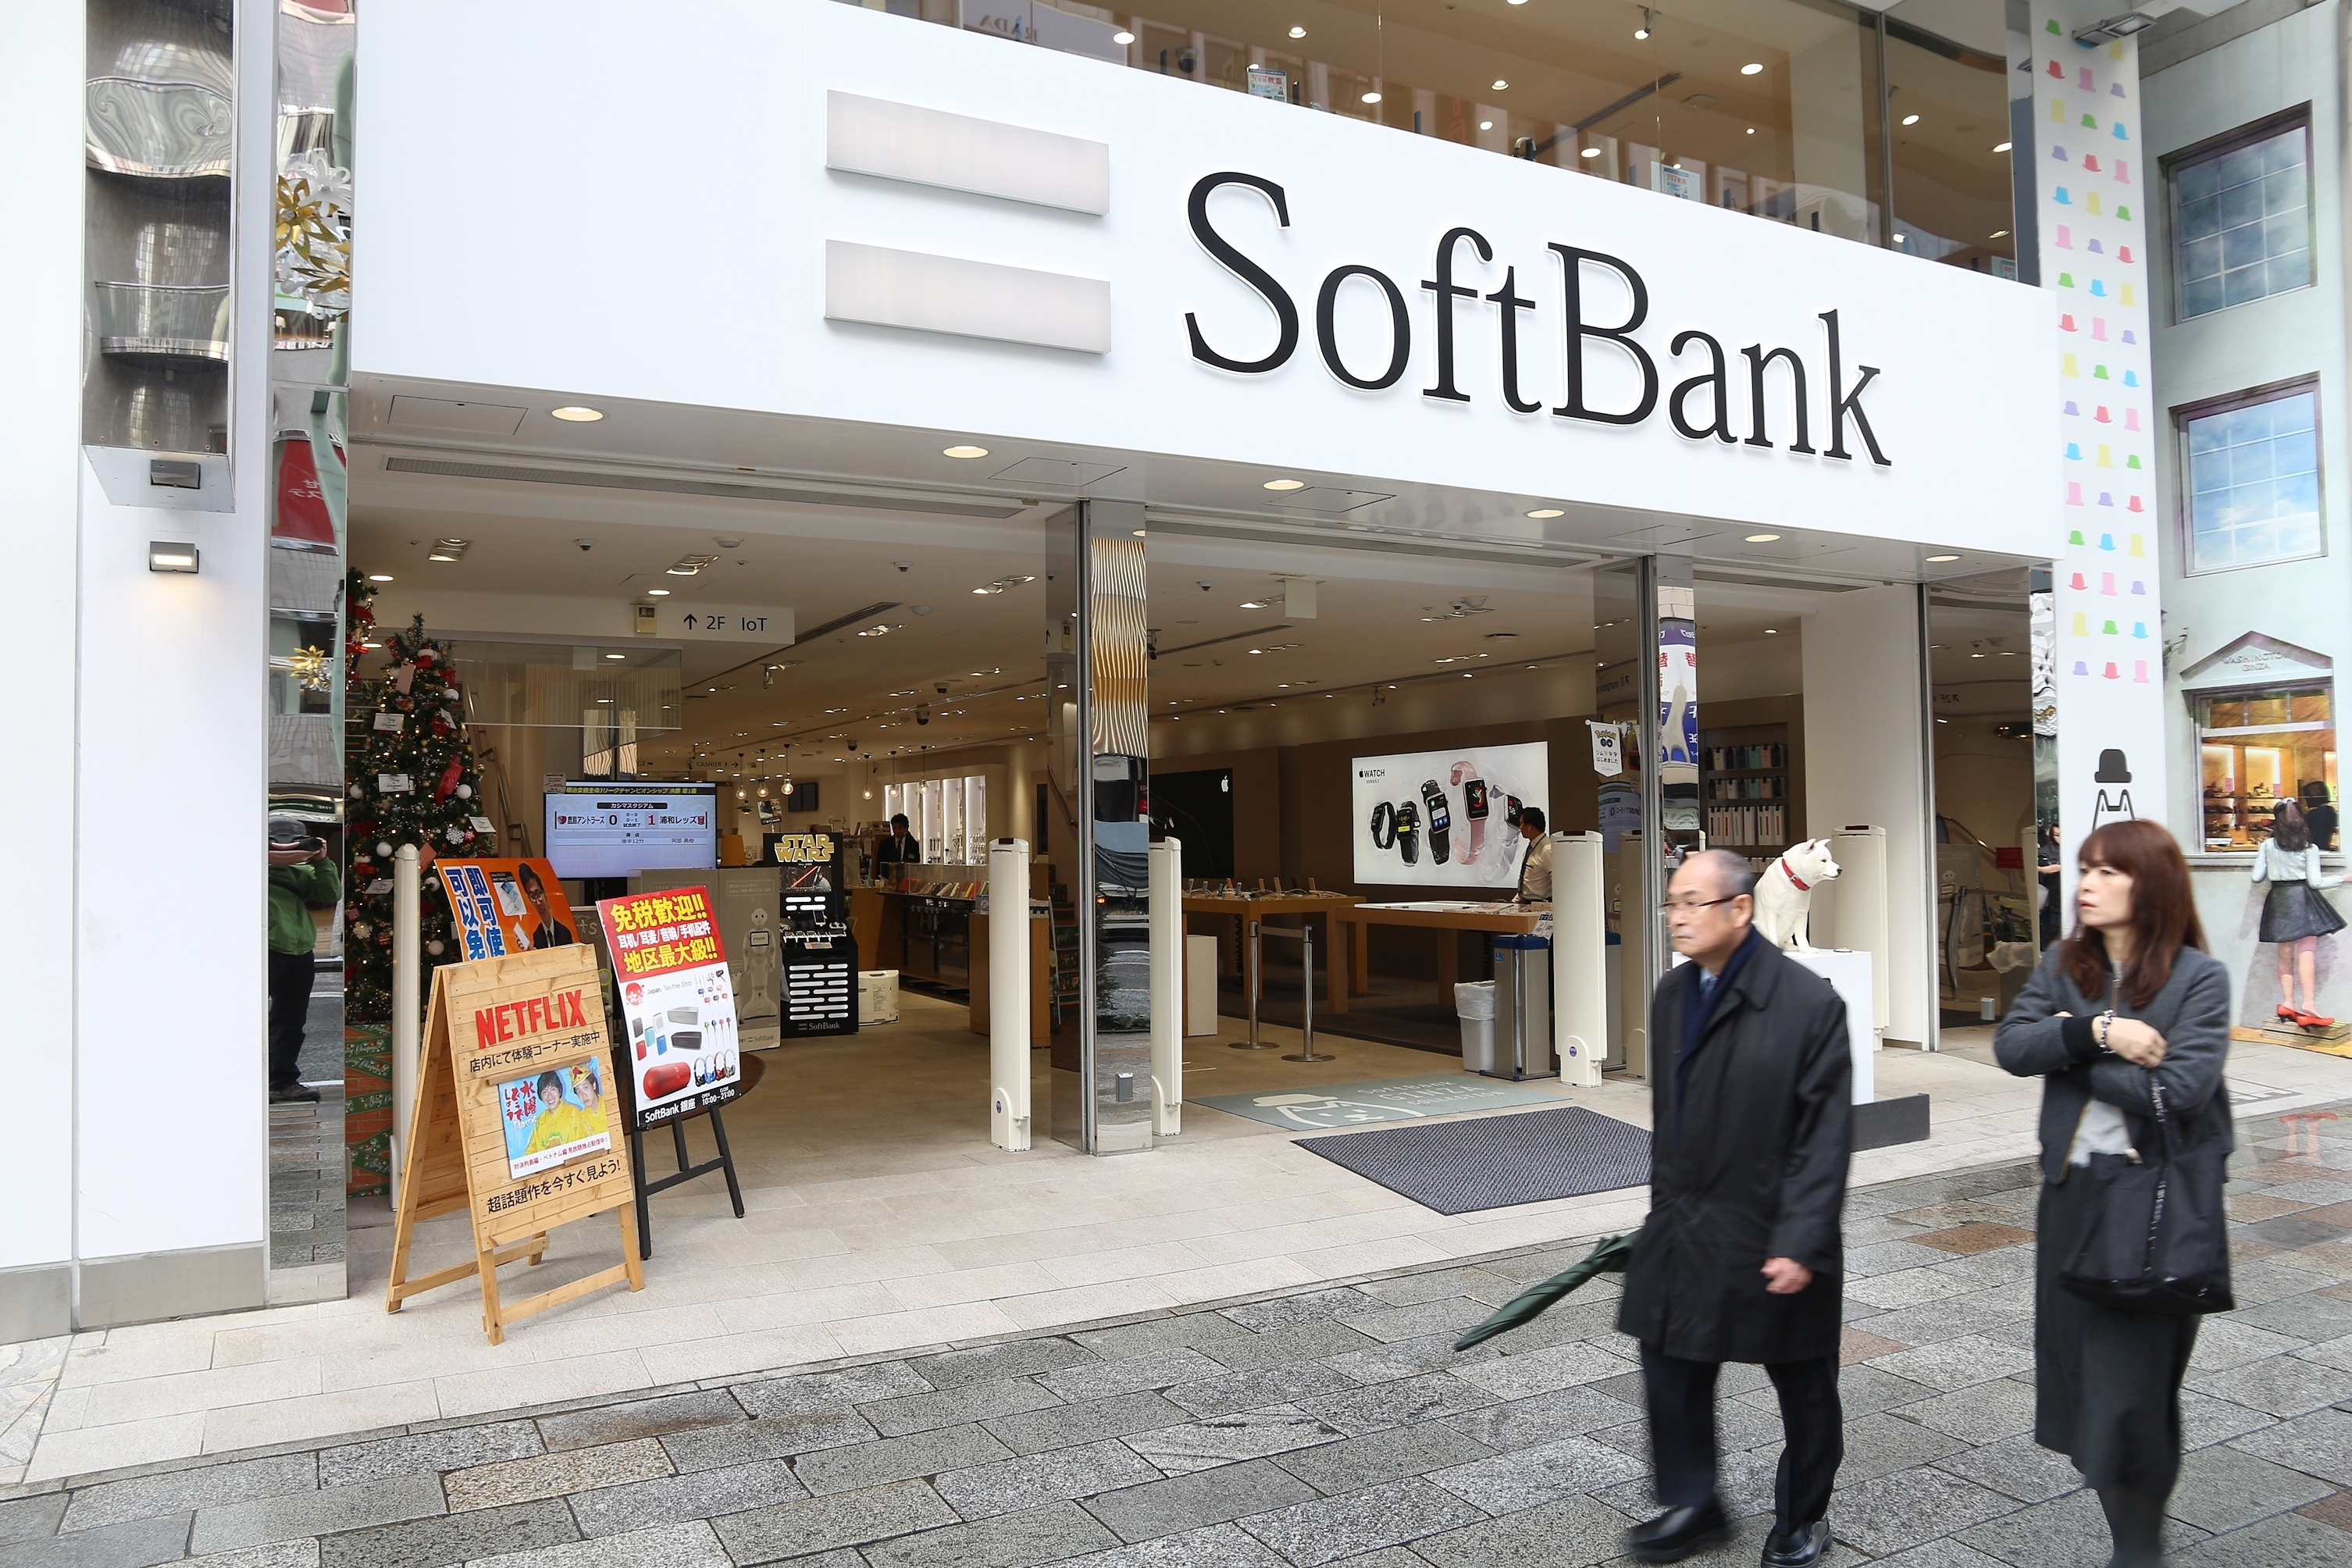 Softbank Successfully Completed Blockchain PoC for P2P Mobile Payments